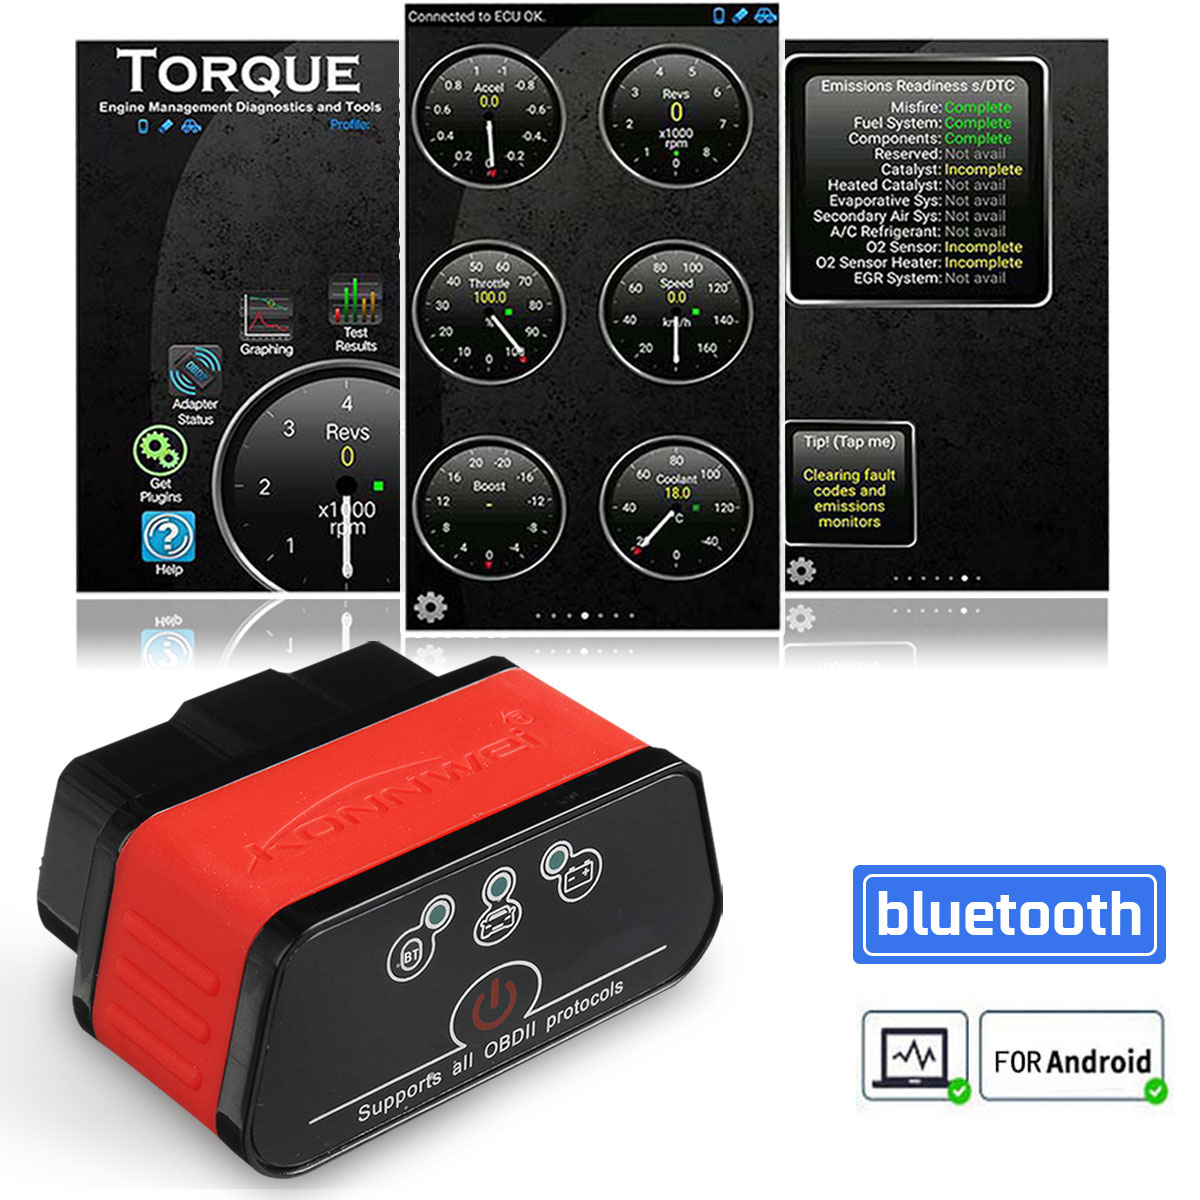 OBD 2 Autoscanner Car Diagnostic Tool for <font><b>ELM327</b></font> ODB2 bluetooth Car2 for ELM 327 V <font><b>1.5</b></font> EML327 OBD2 Scanner Chip 4mhz image